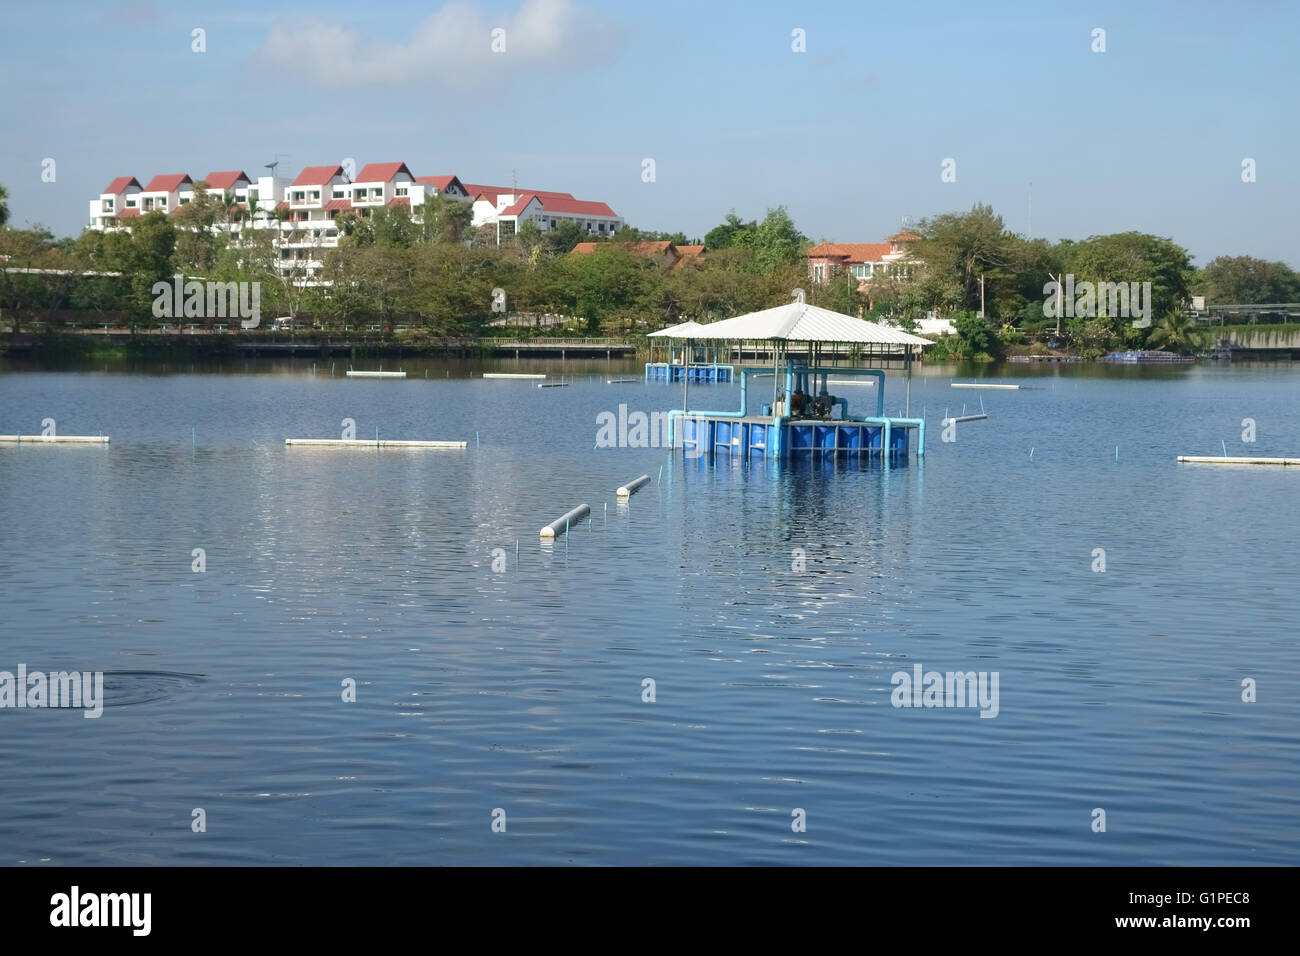 Lake with irrigation pumps to circulate water and irrigate surrounding gardens, Bangkok, Thailand - Stock Image